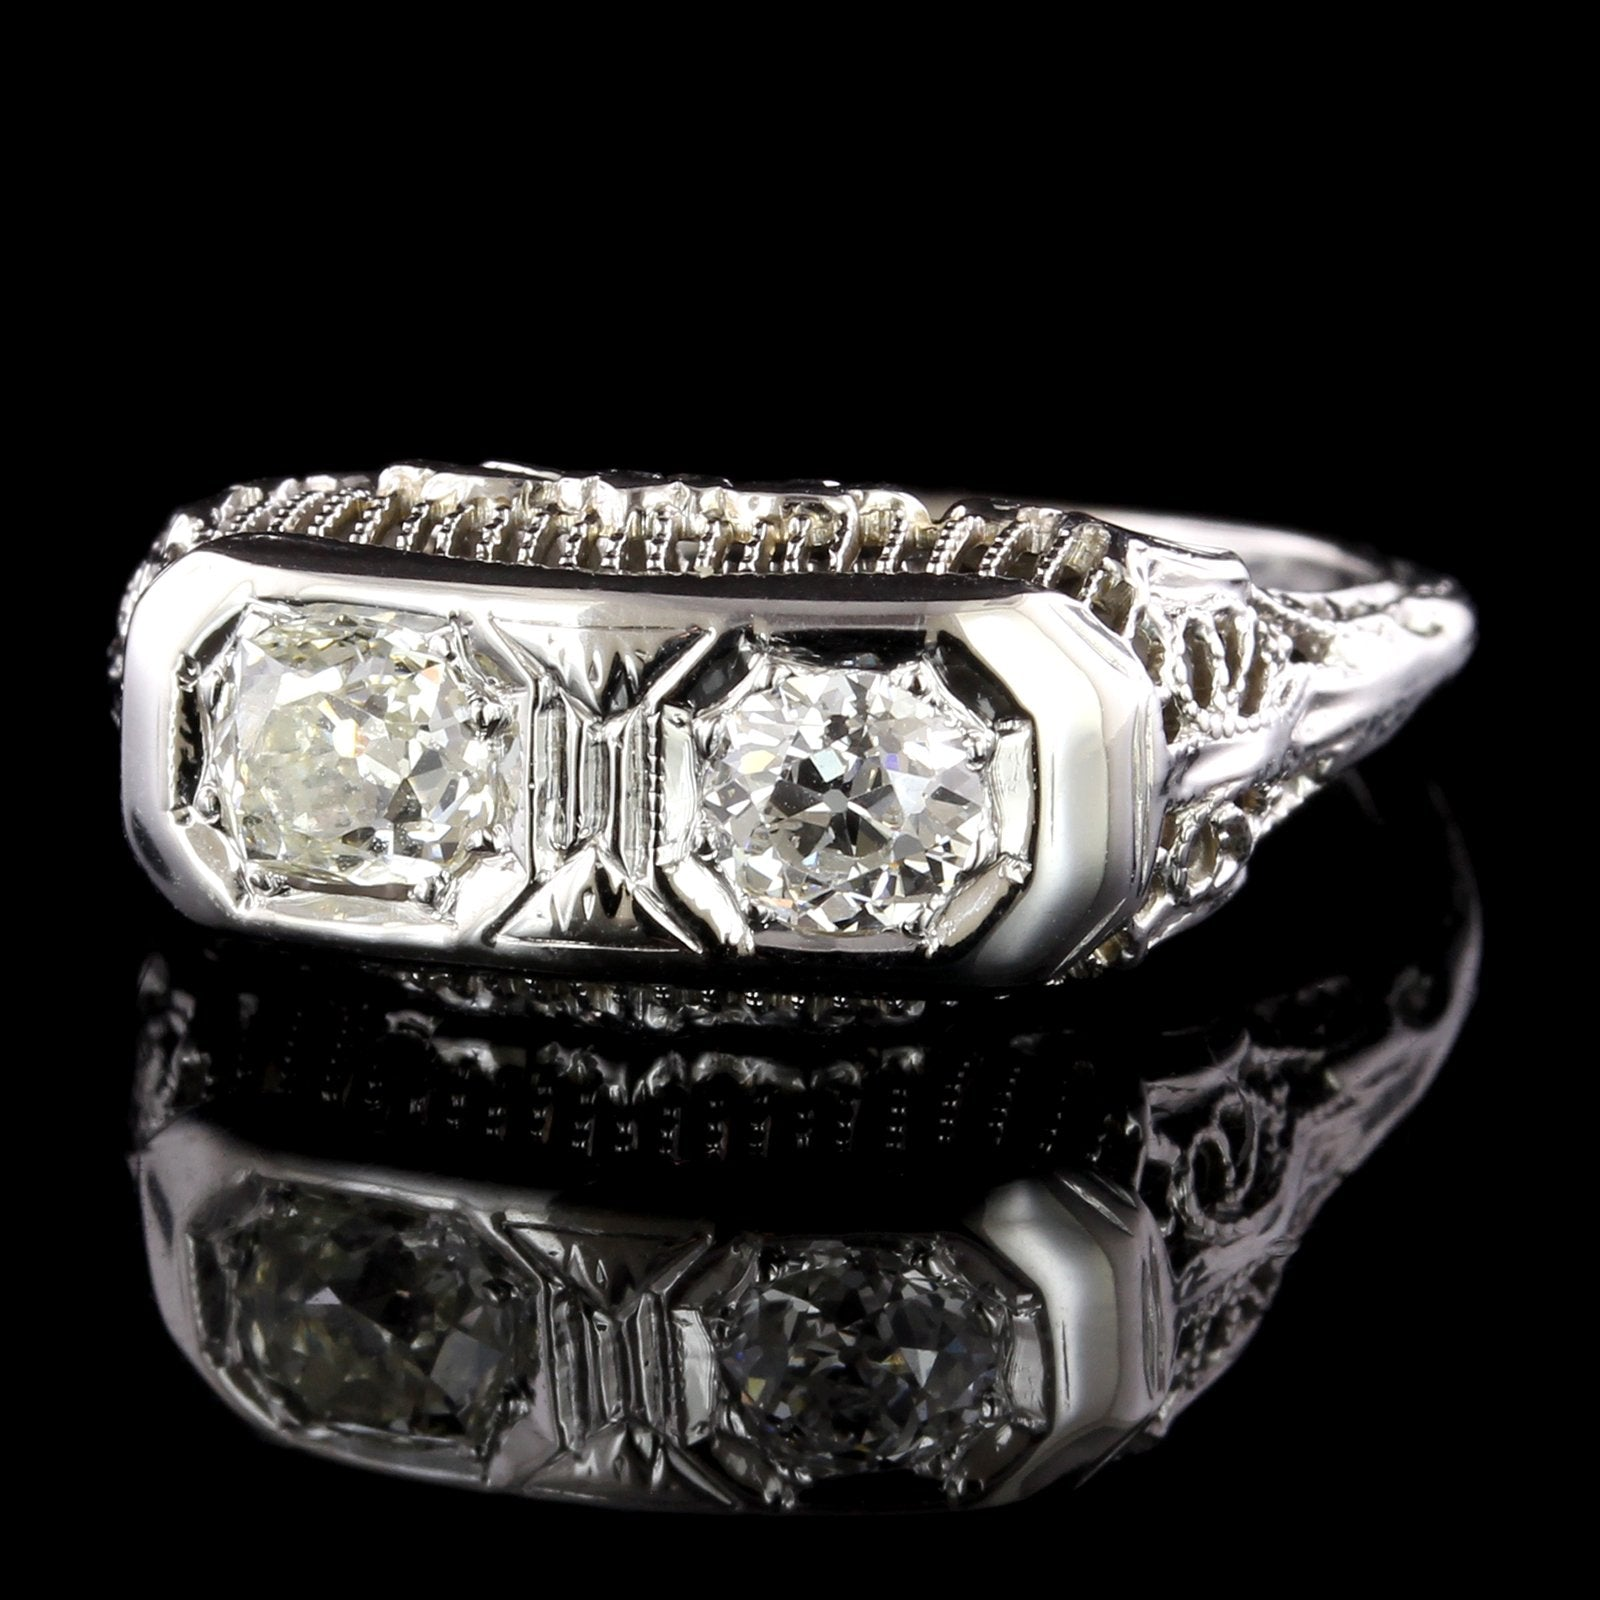 Antique 14K White Gold Diamond Twin-stone Ring